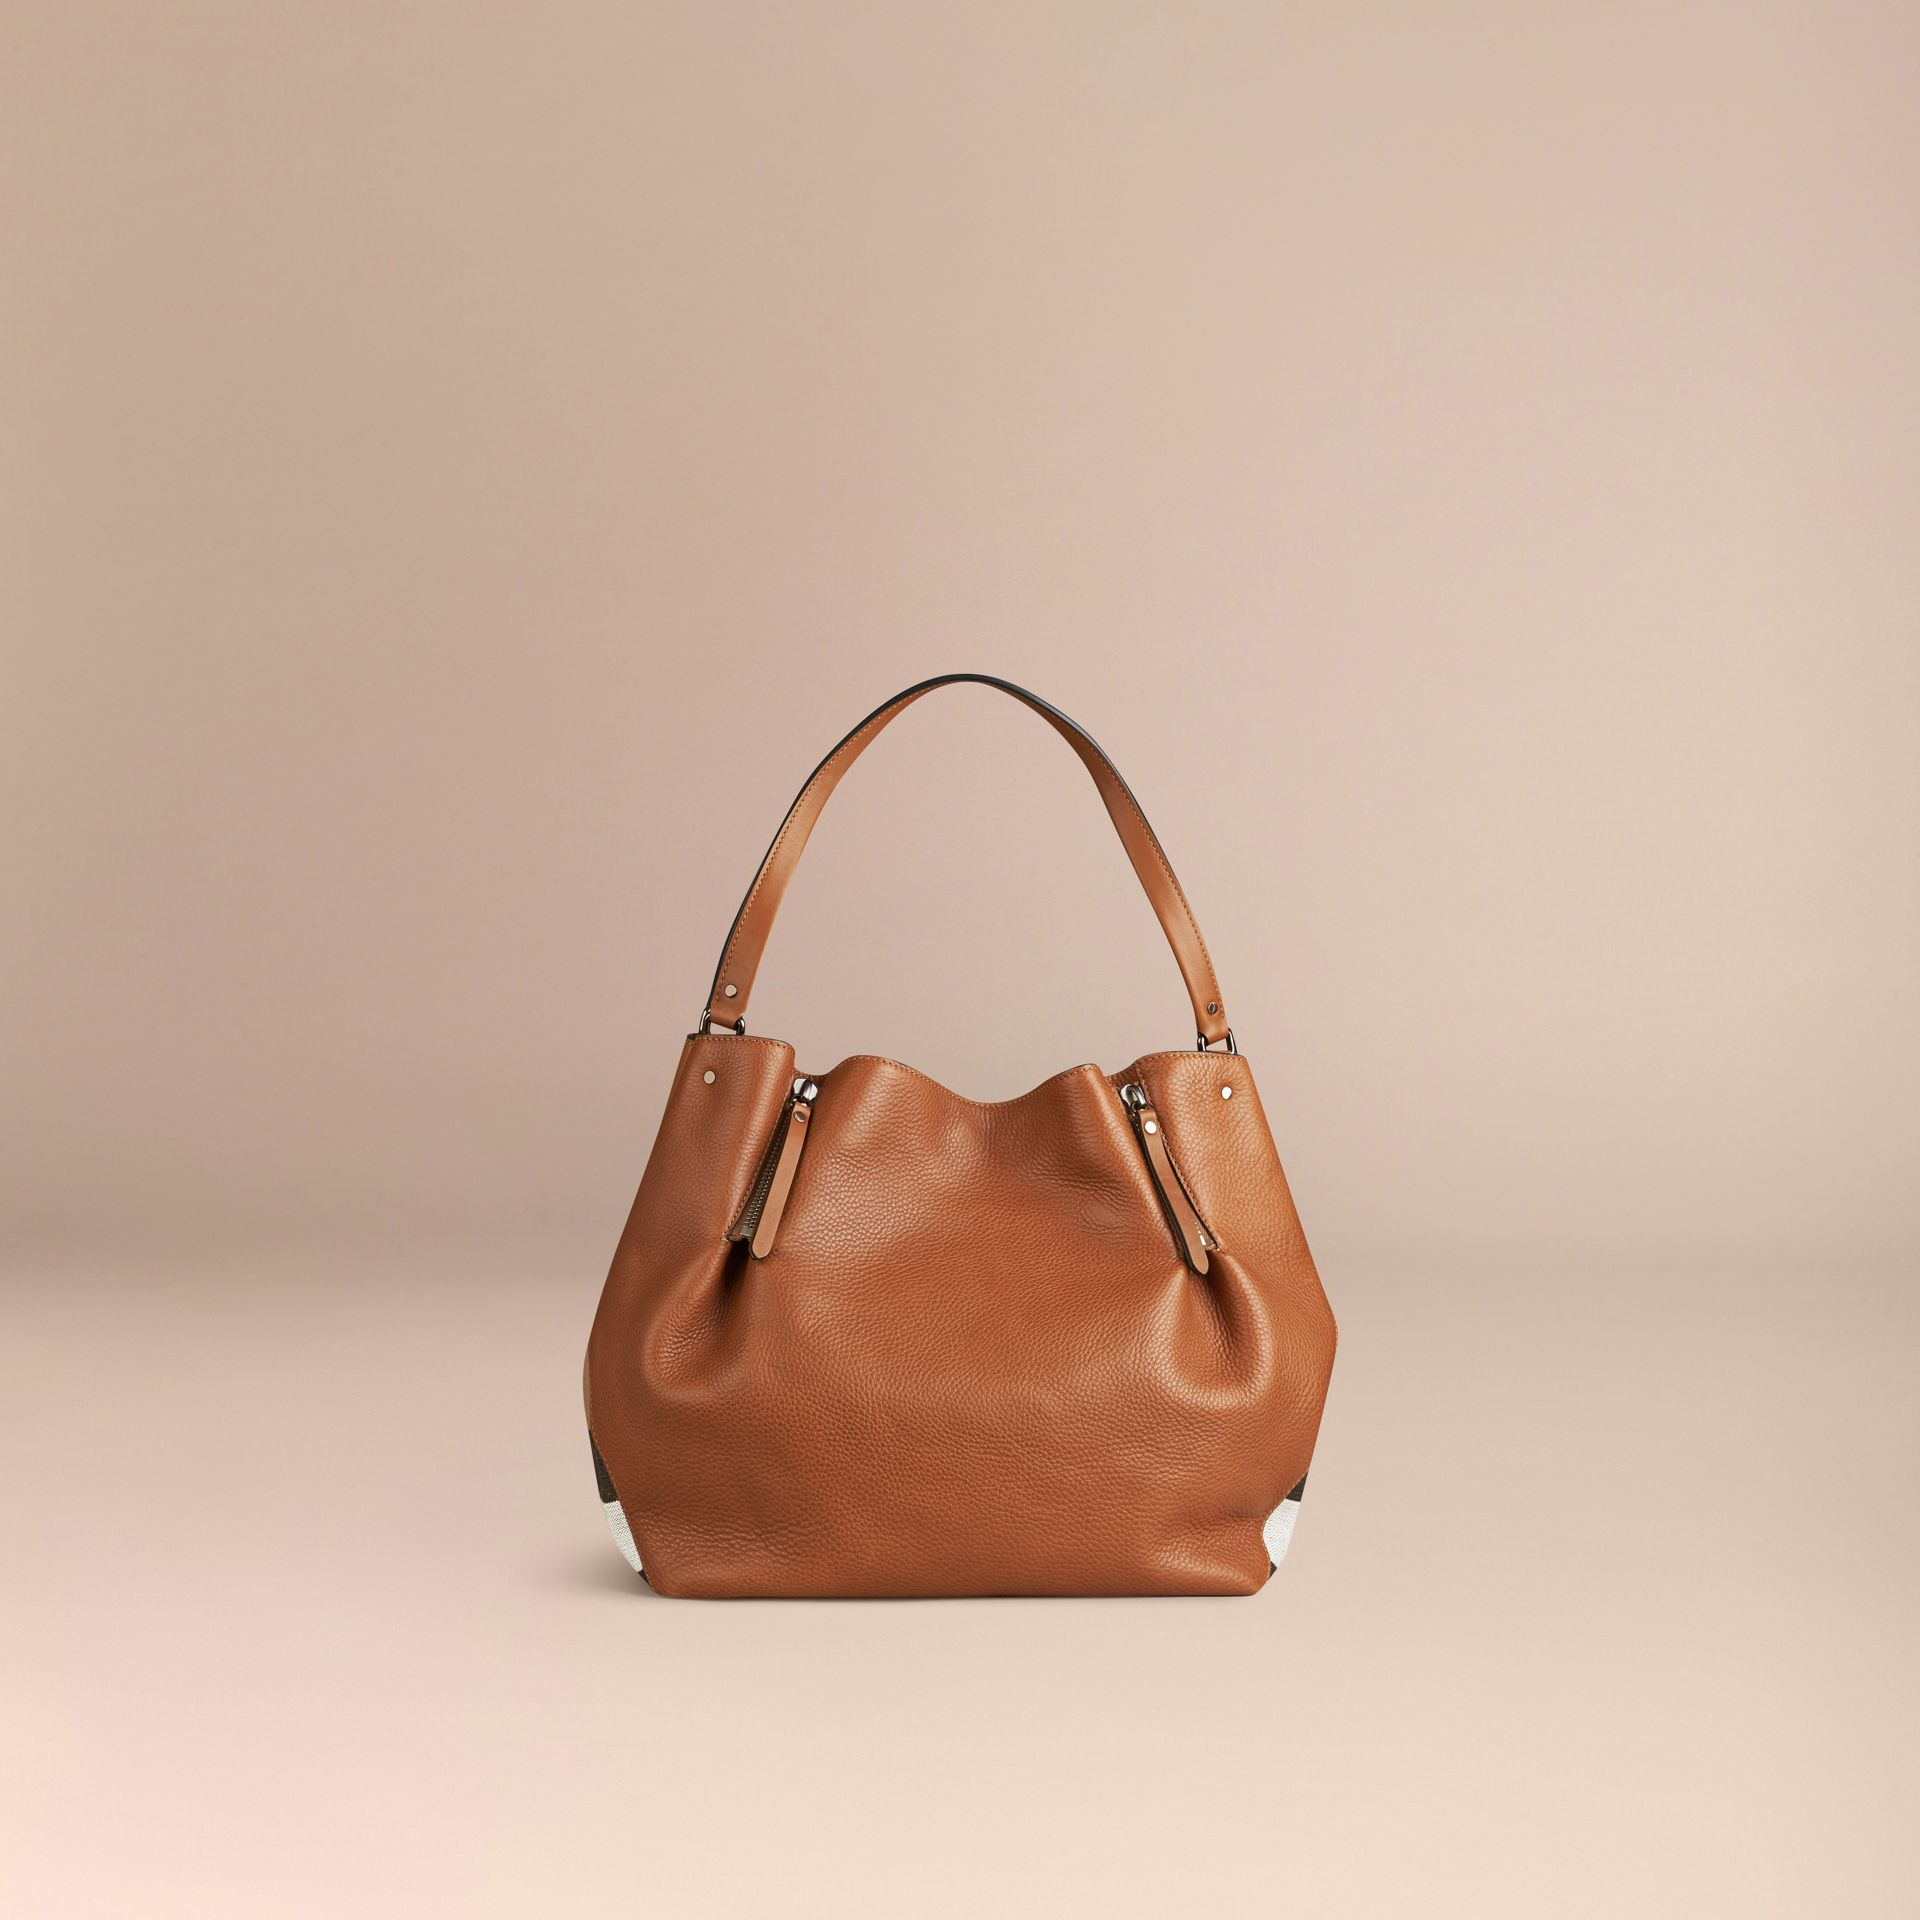 Marron cigare Sac tote medium en cuir orné de touches check Marron Cigare - photo de la galerie 4